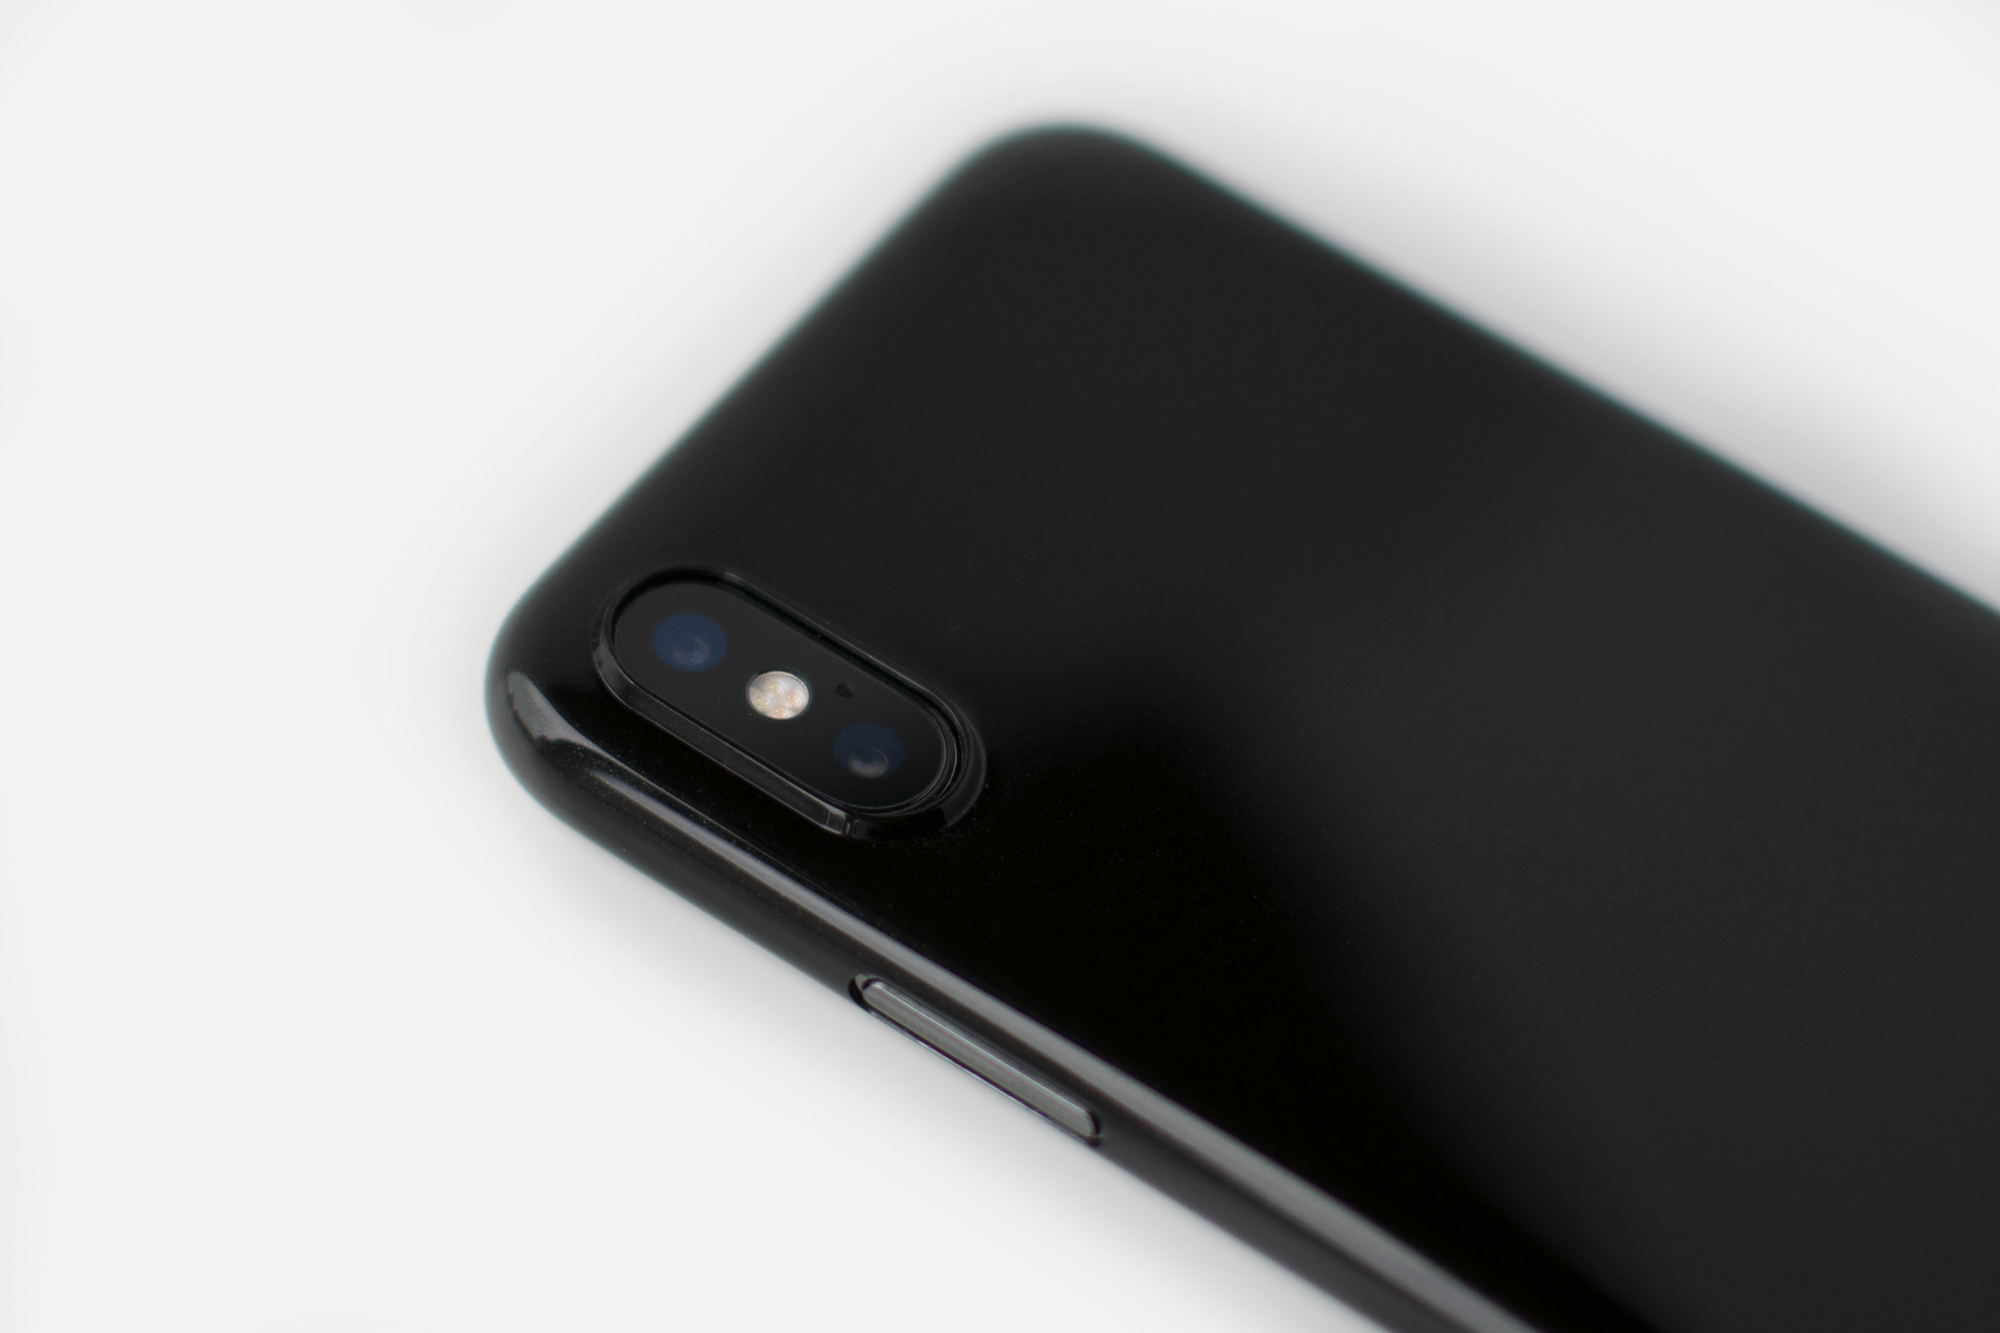 iPhone X - Glossy Black Phone Case